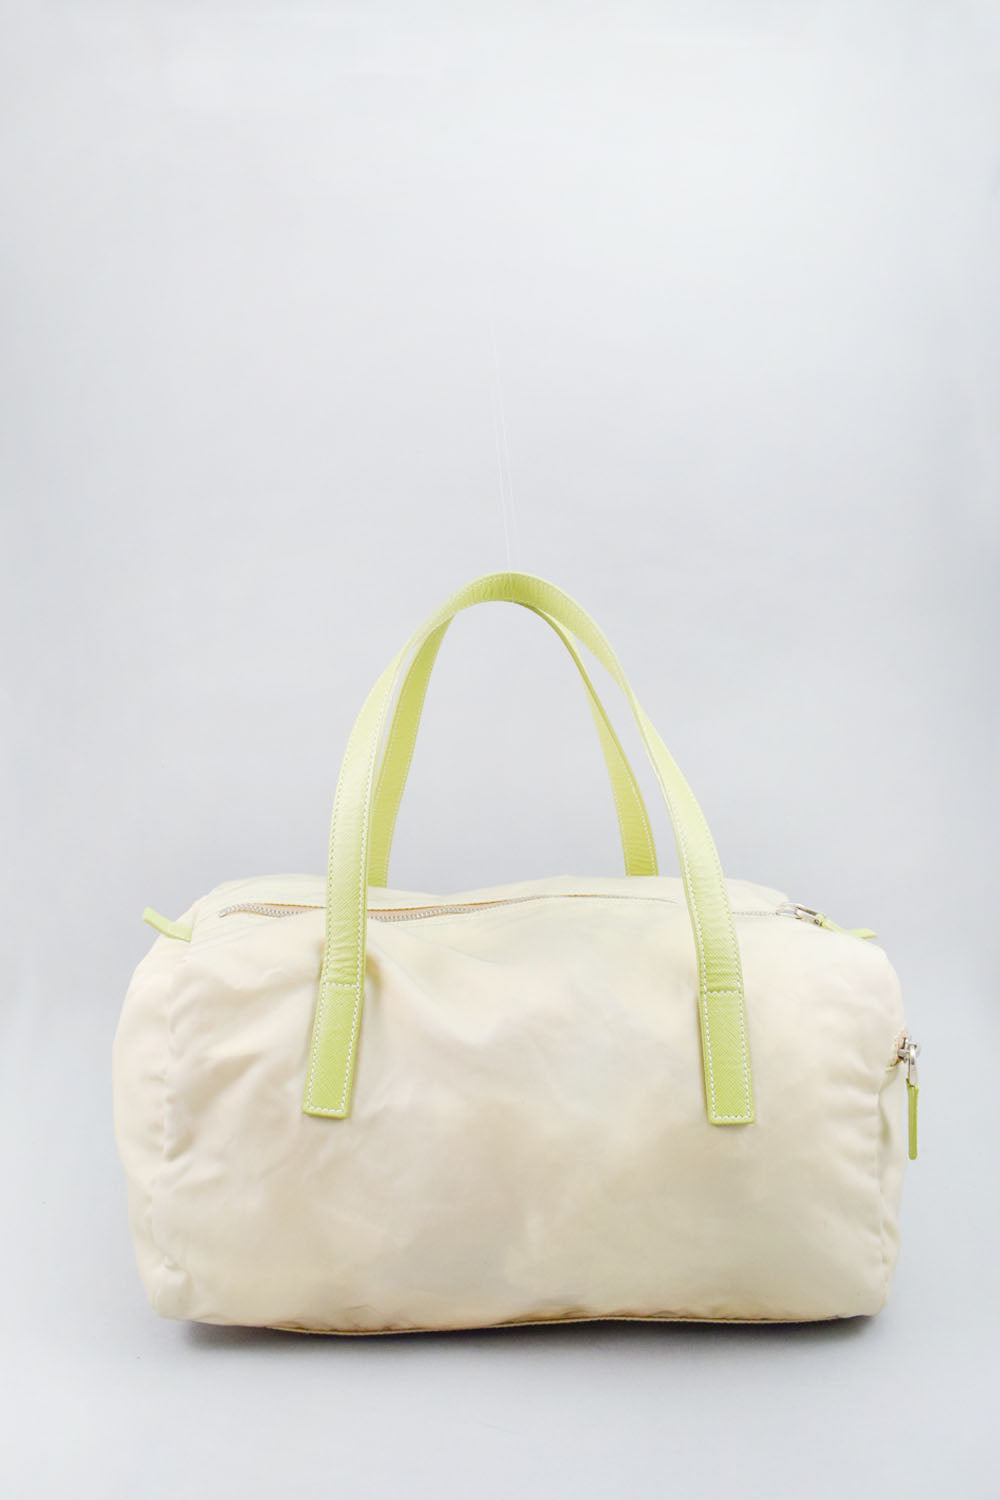 Prada Cream Nylon Bag w/ Green Handle